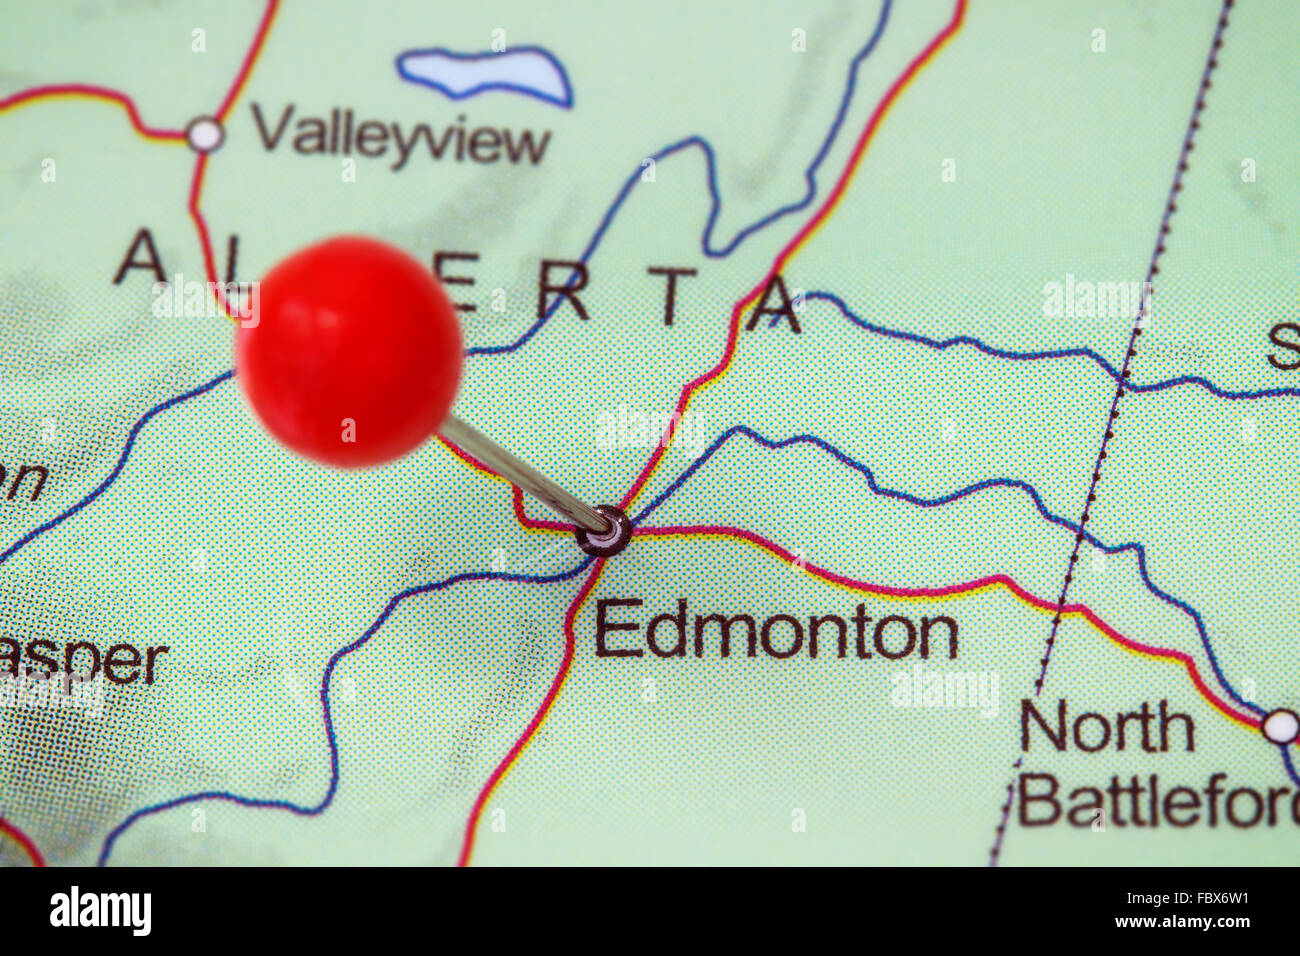 Edmonton Map Of Canada.Close Up Of A Red Pushpin In A Map Of Edmonton Canada Stock Photo